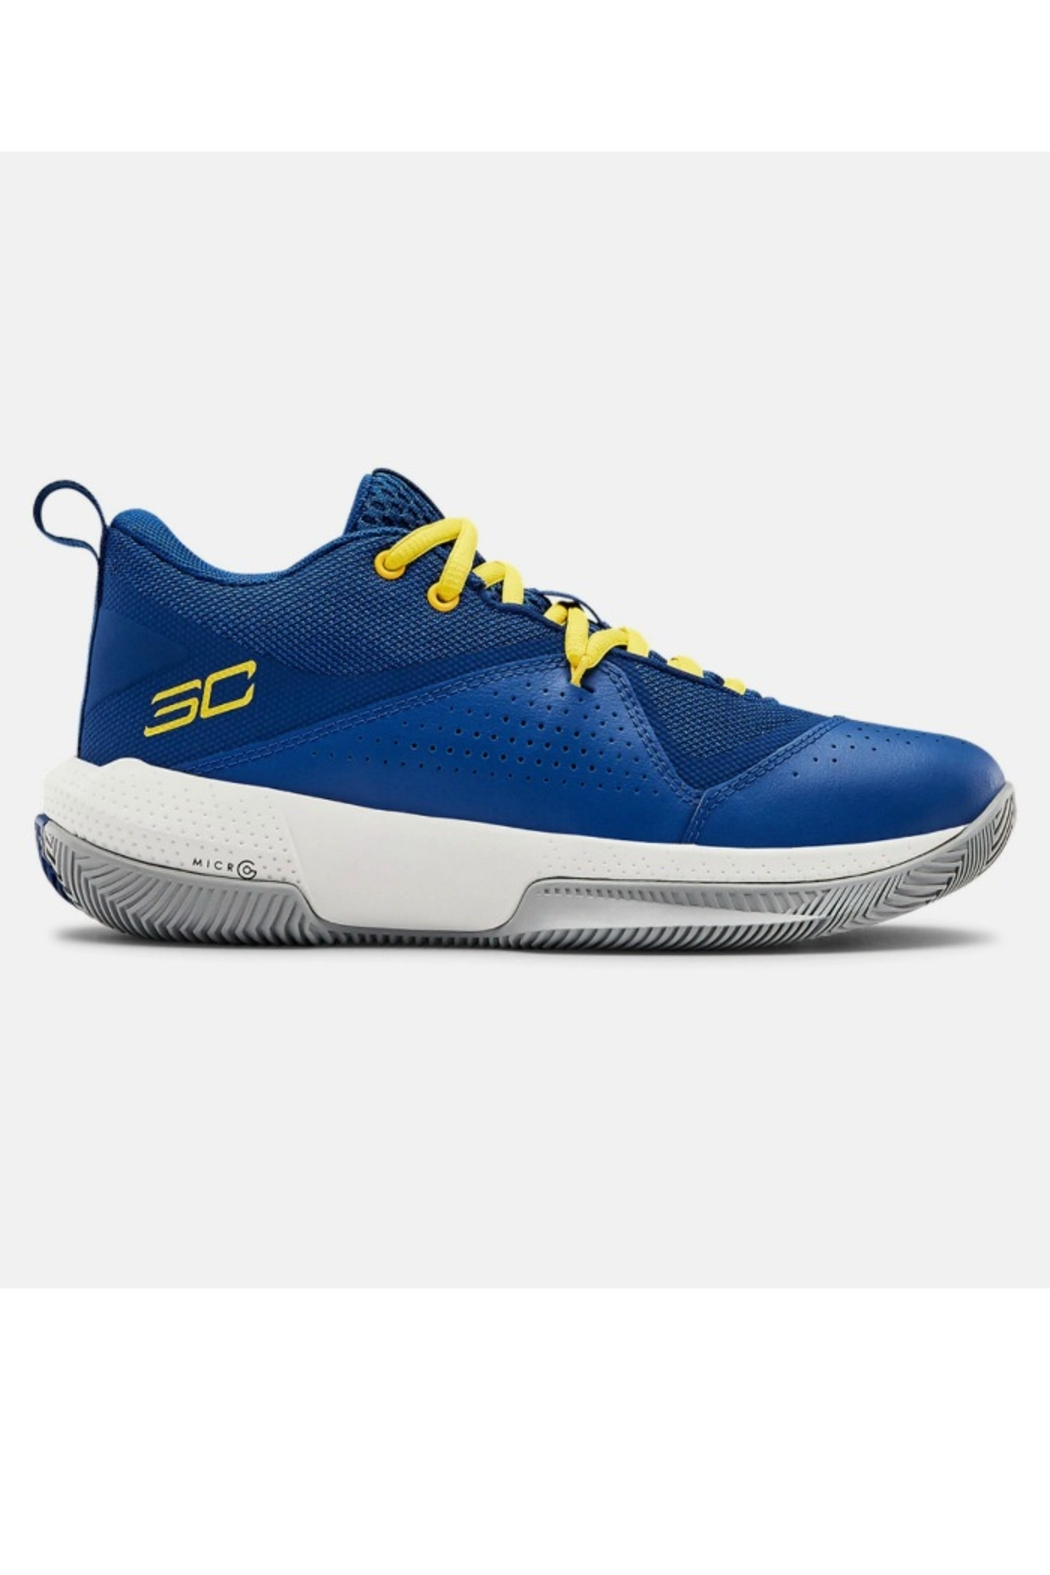 Under Armour SC 3Zero IV - Front Cropped Image